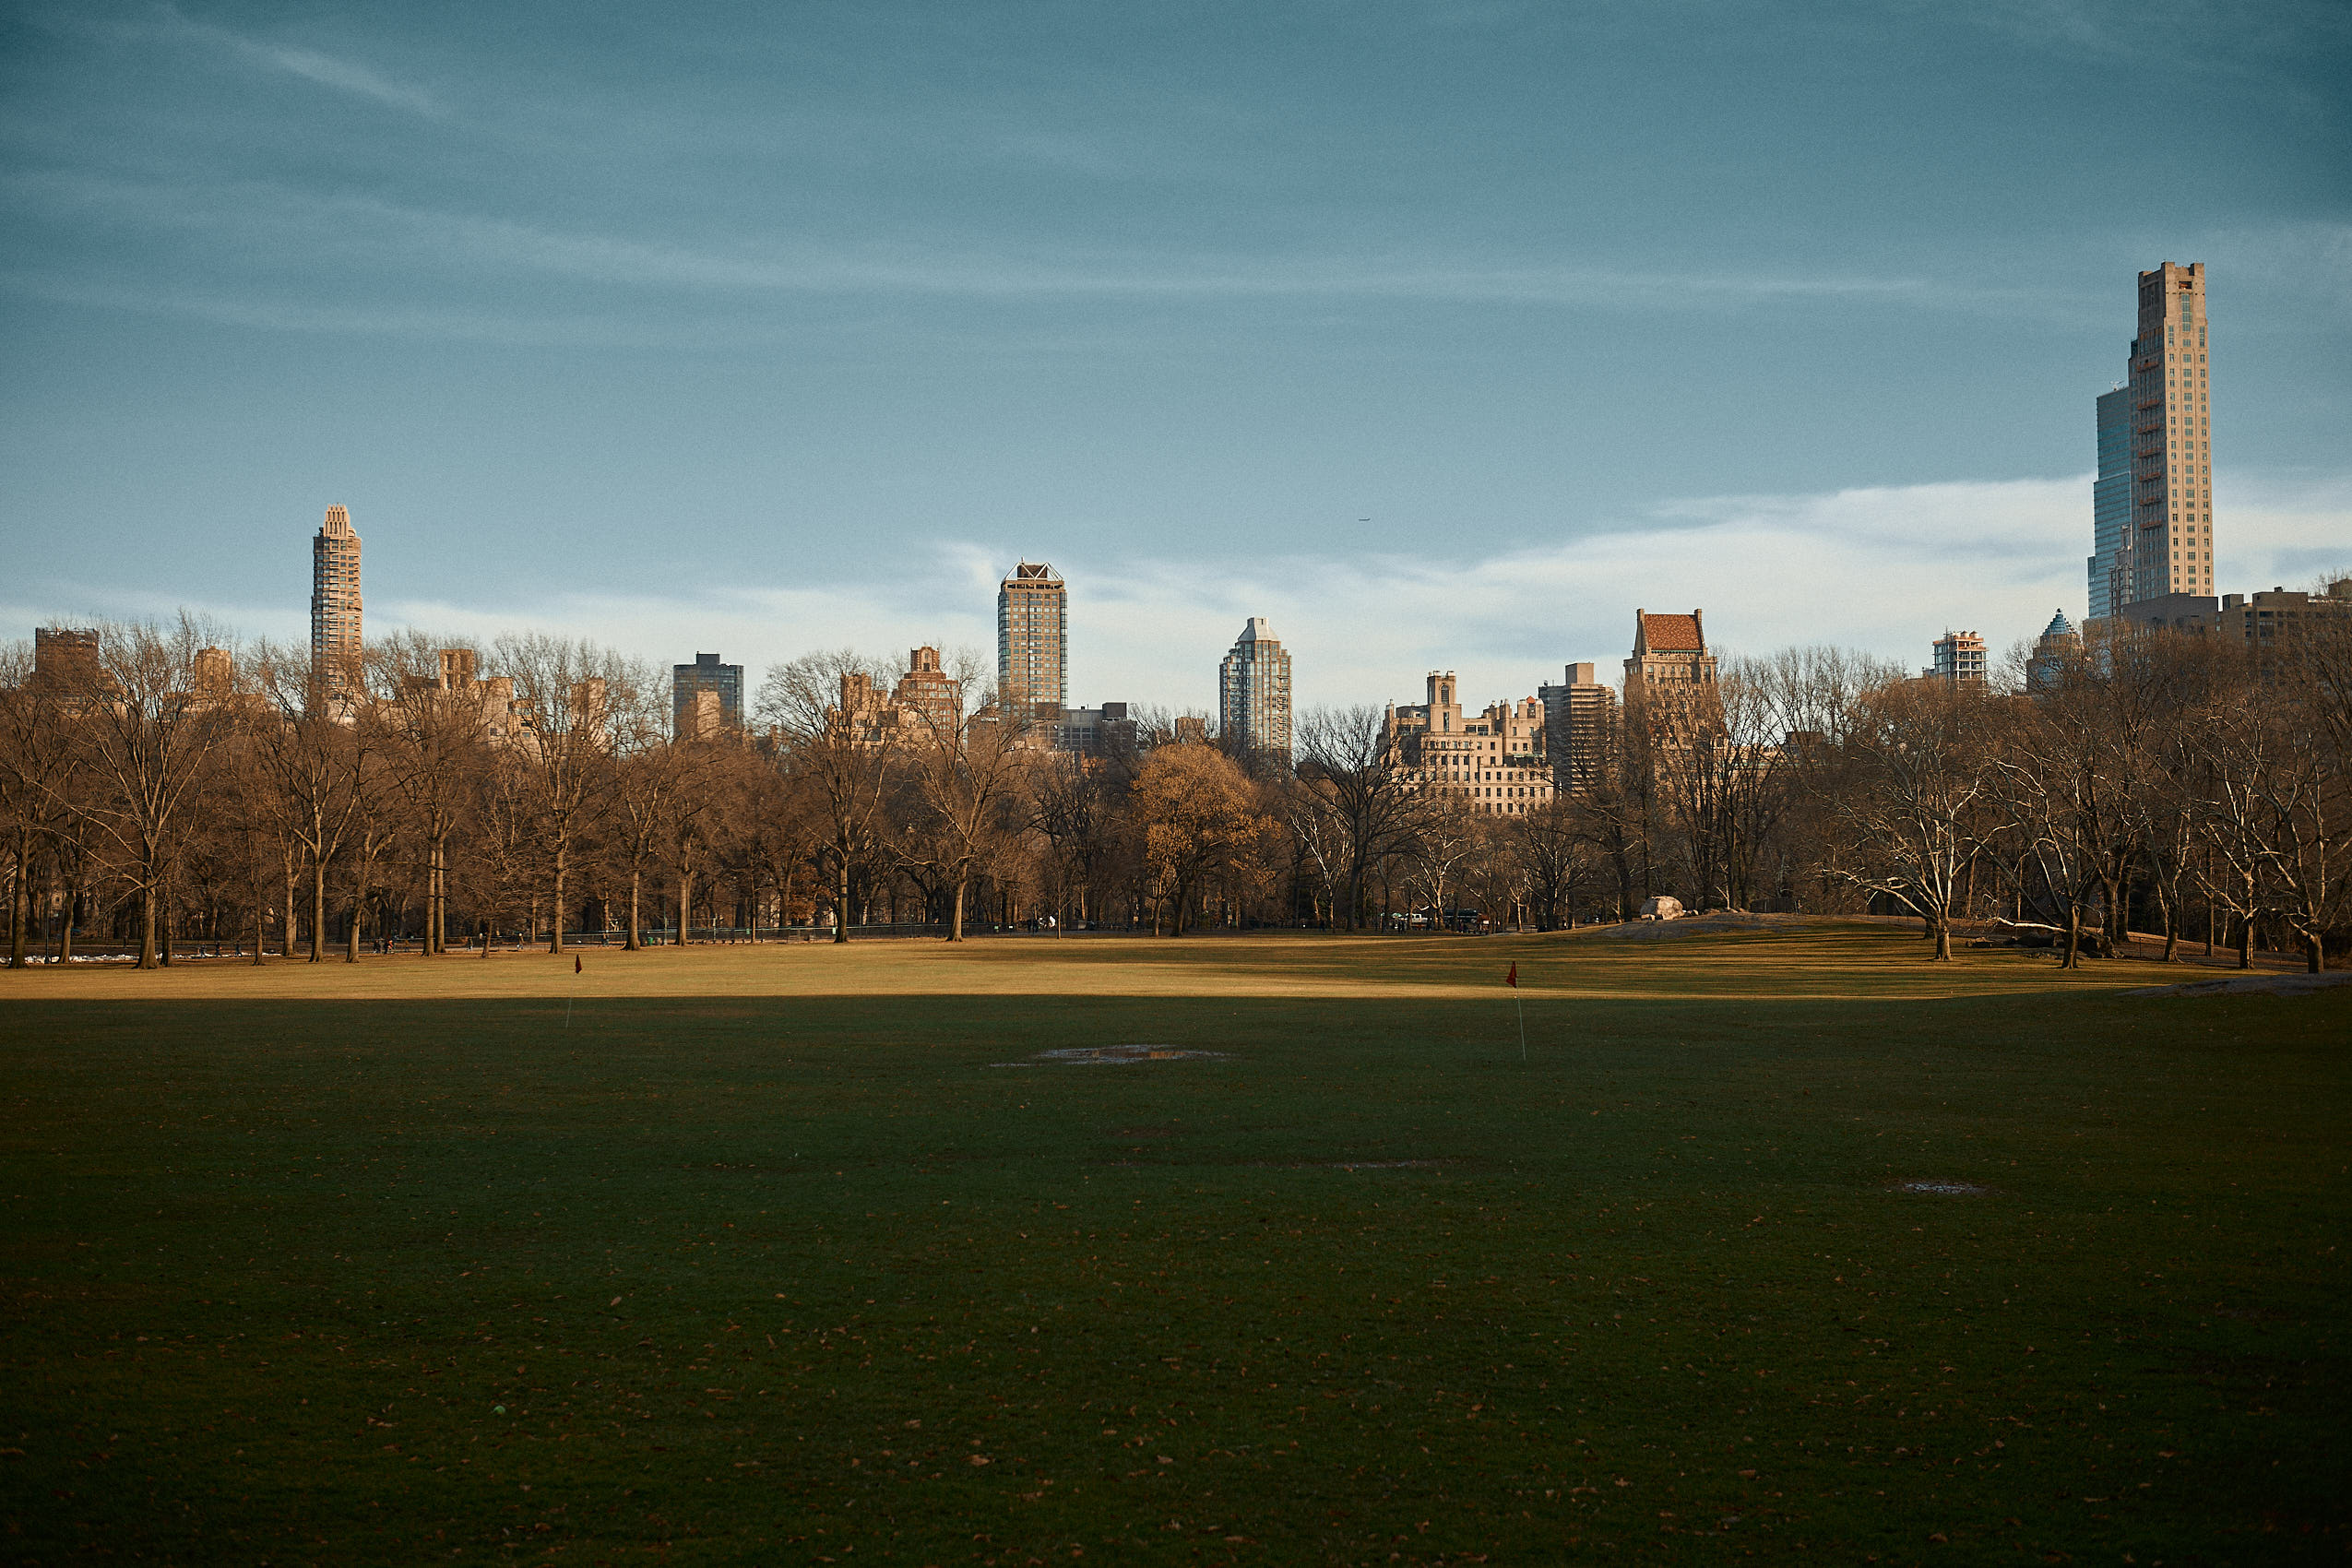 Central Park, New York photo by MarcelTiedje